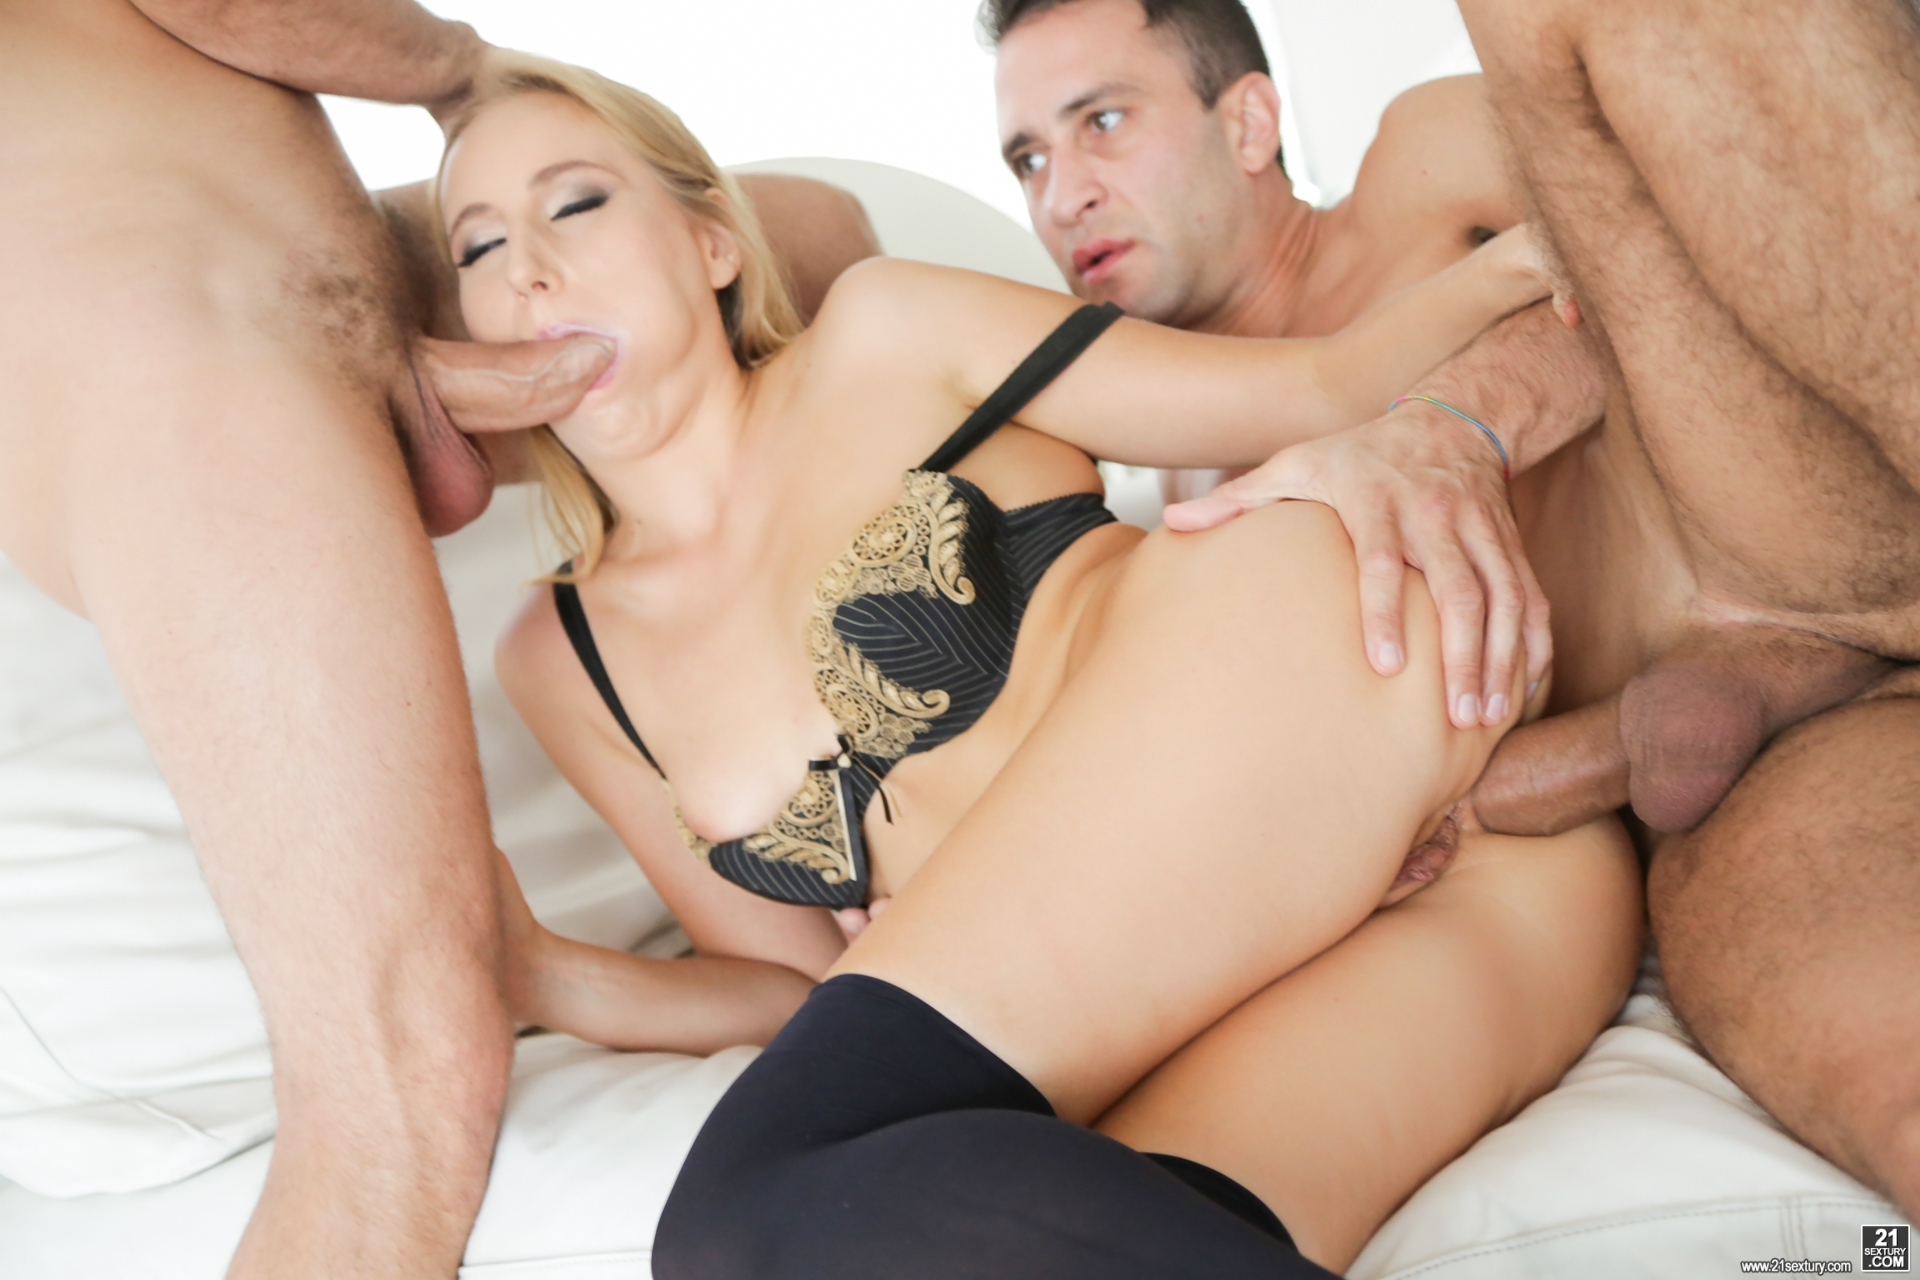 Sexy men porn for women-6344